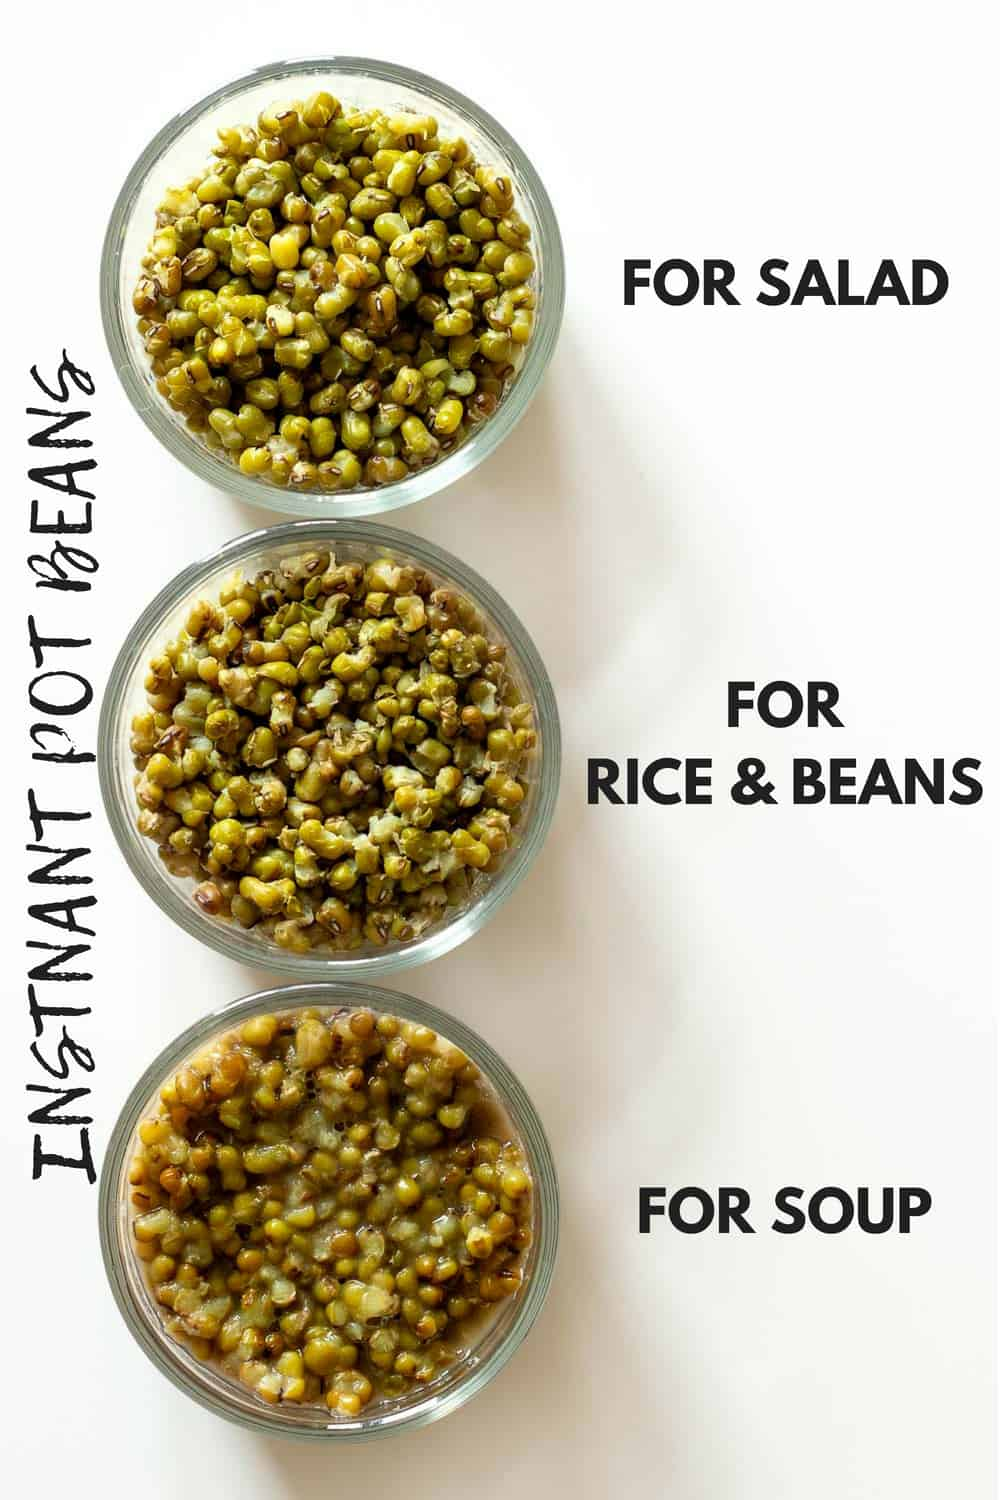 Showing consistency of Instant Pot Beans after different cooking times